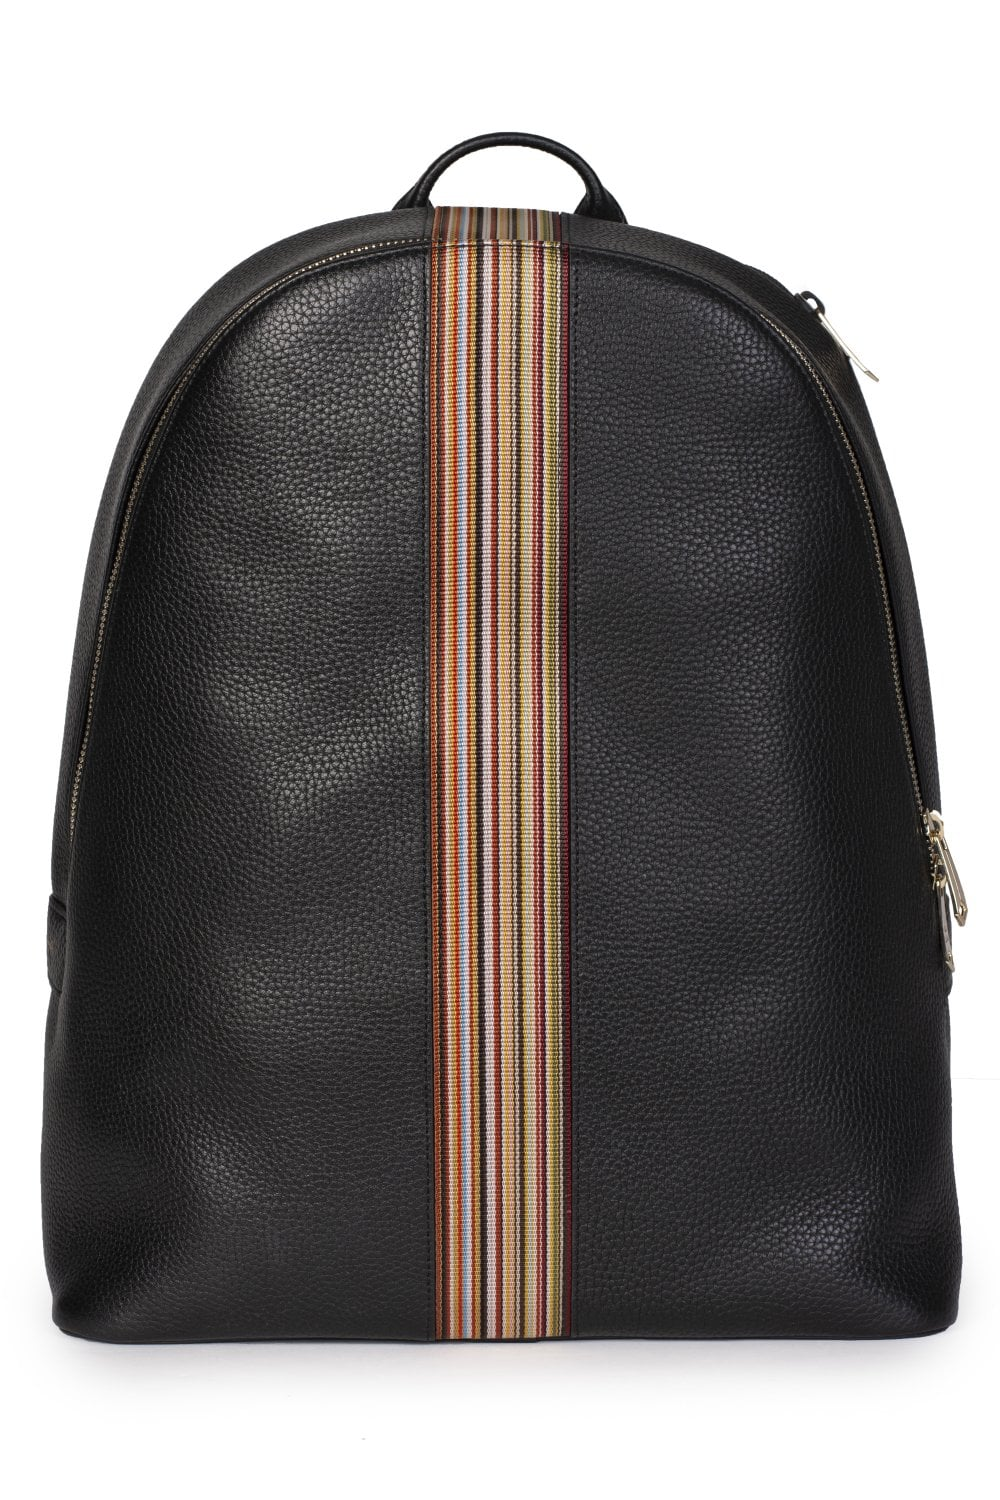 6d7cf20a7a PAUL SMITH Signature Multi-coloured Stripe Trim Leather Backpack ...